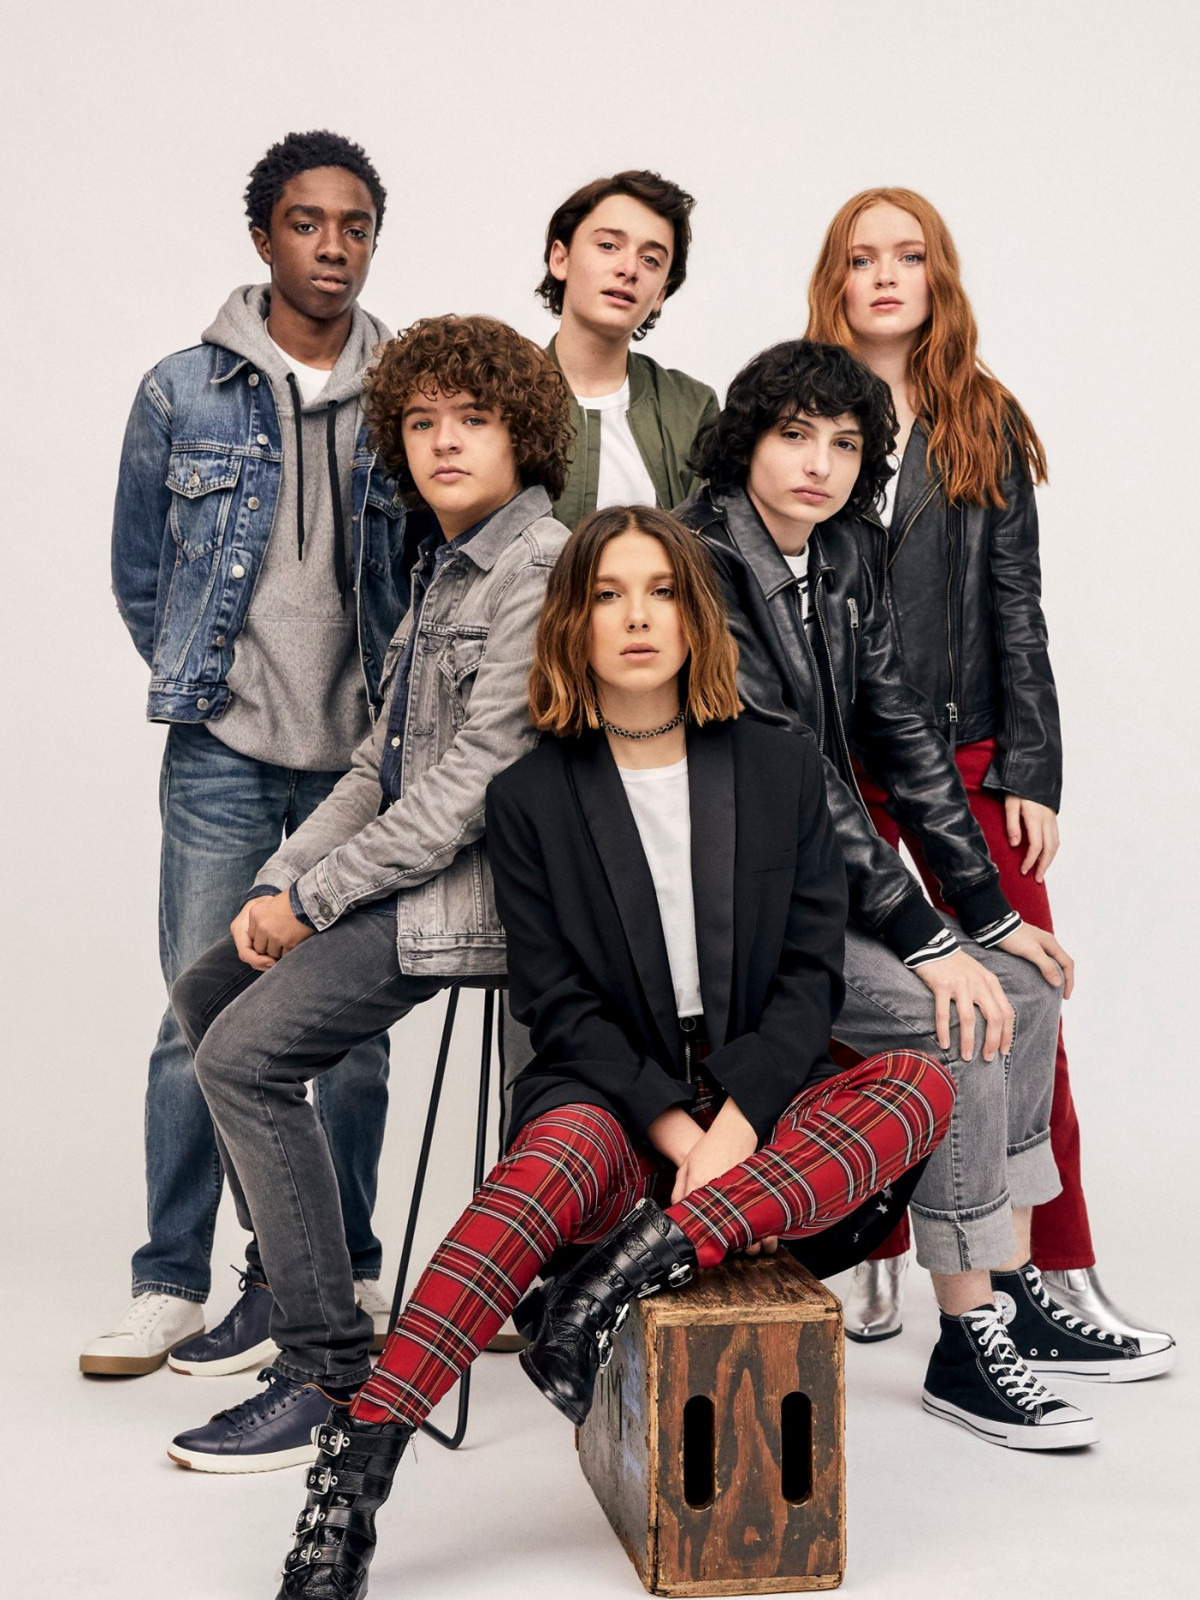 Stranger Things cast 2019 Season 3